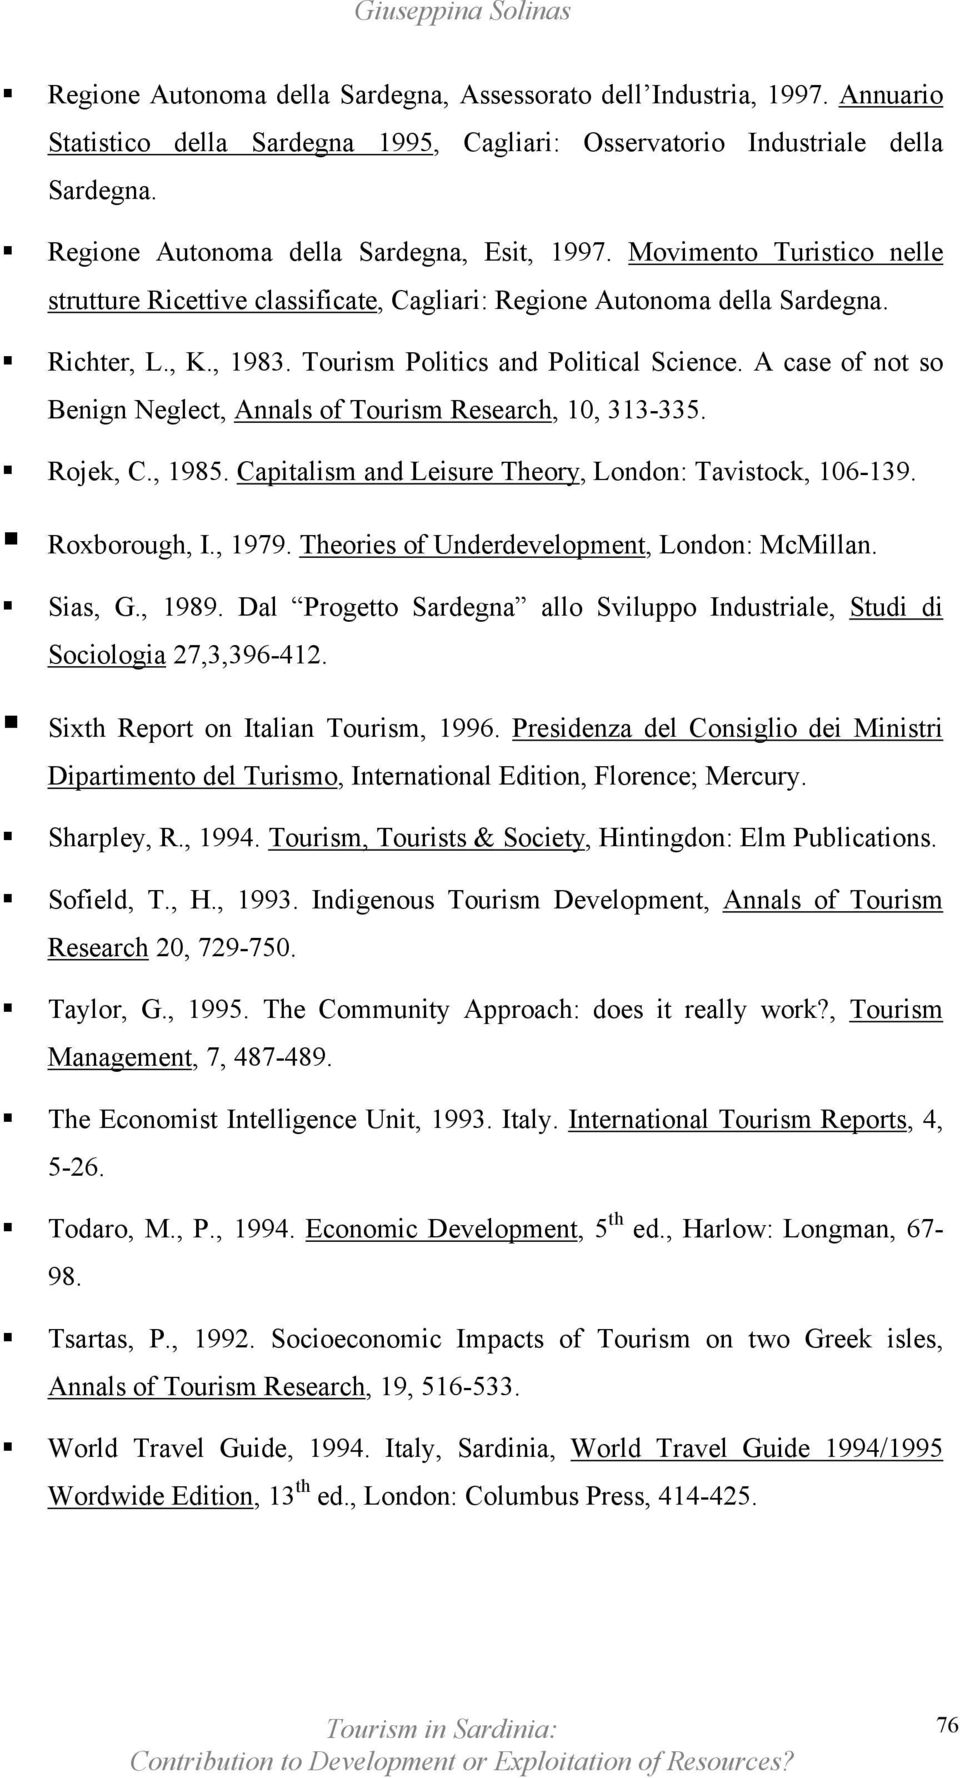 Tourism Politics and Political Science. A case of not so Benign Neglect, Annals of Tourism Research, 10, 313-335. Rojek, C., 1985. Capitalism and Leisure Theory, London: Tavistock, 106-139.